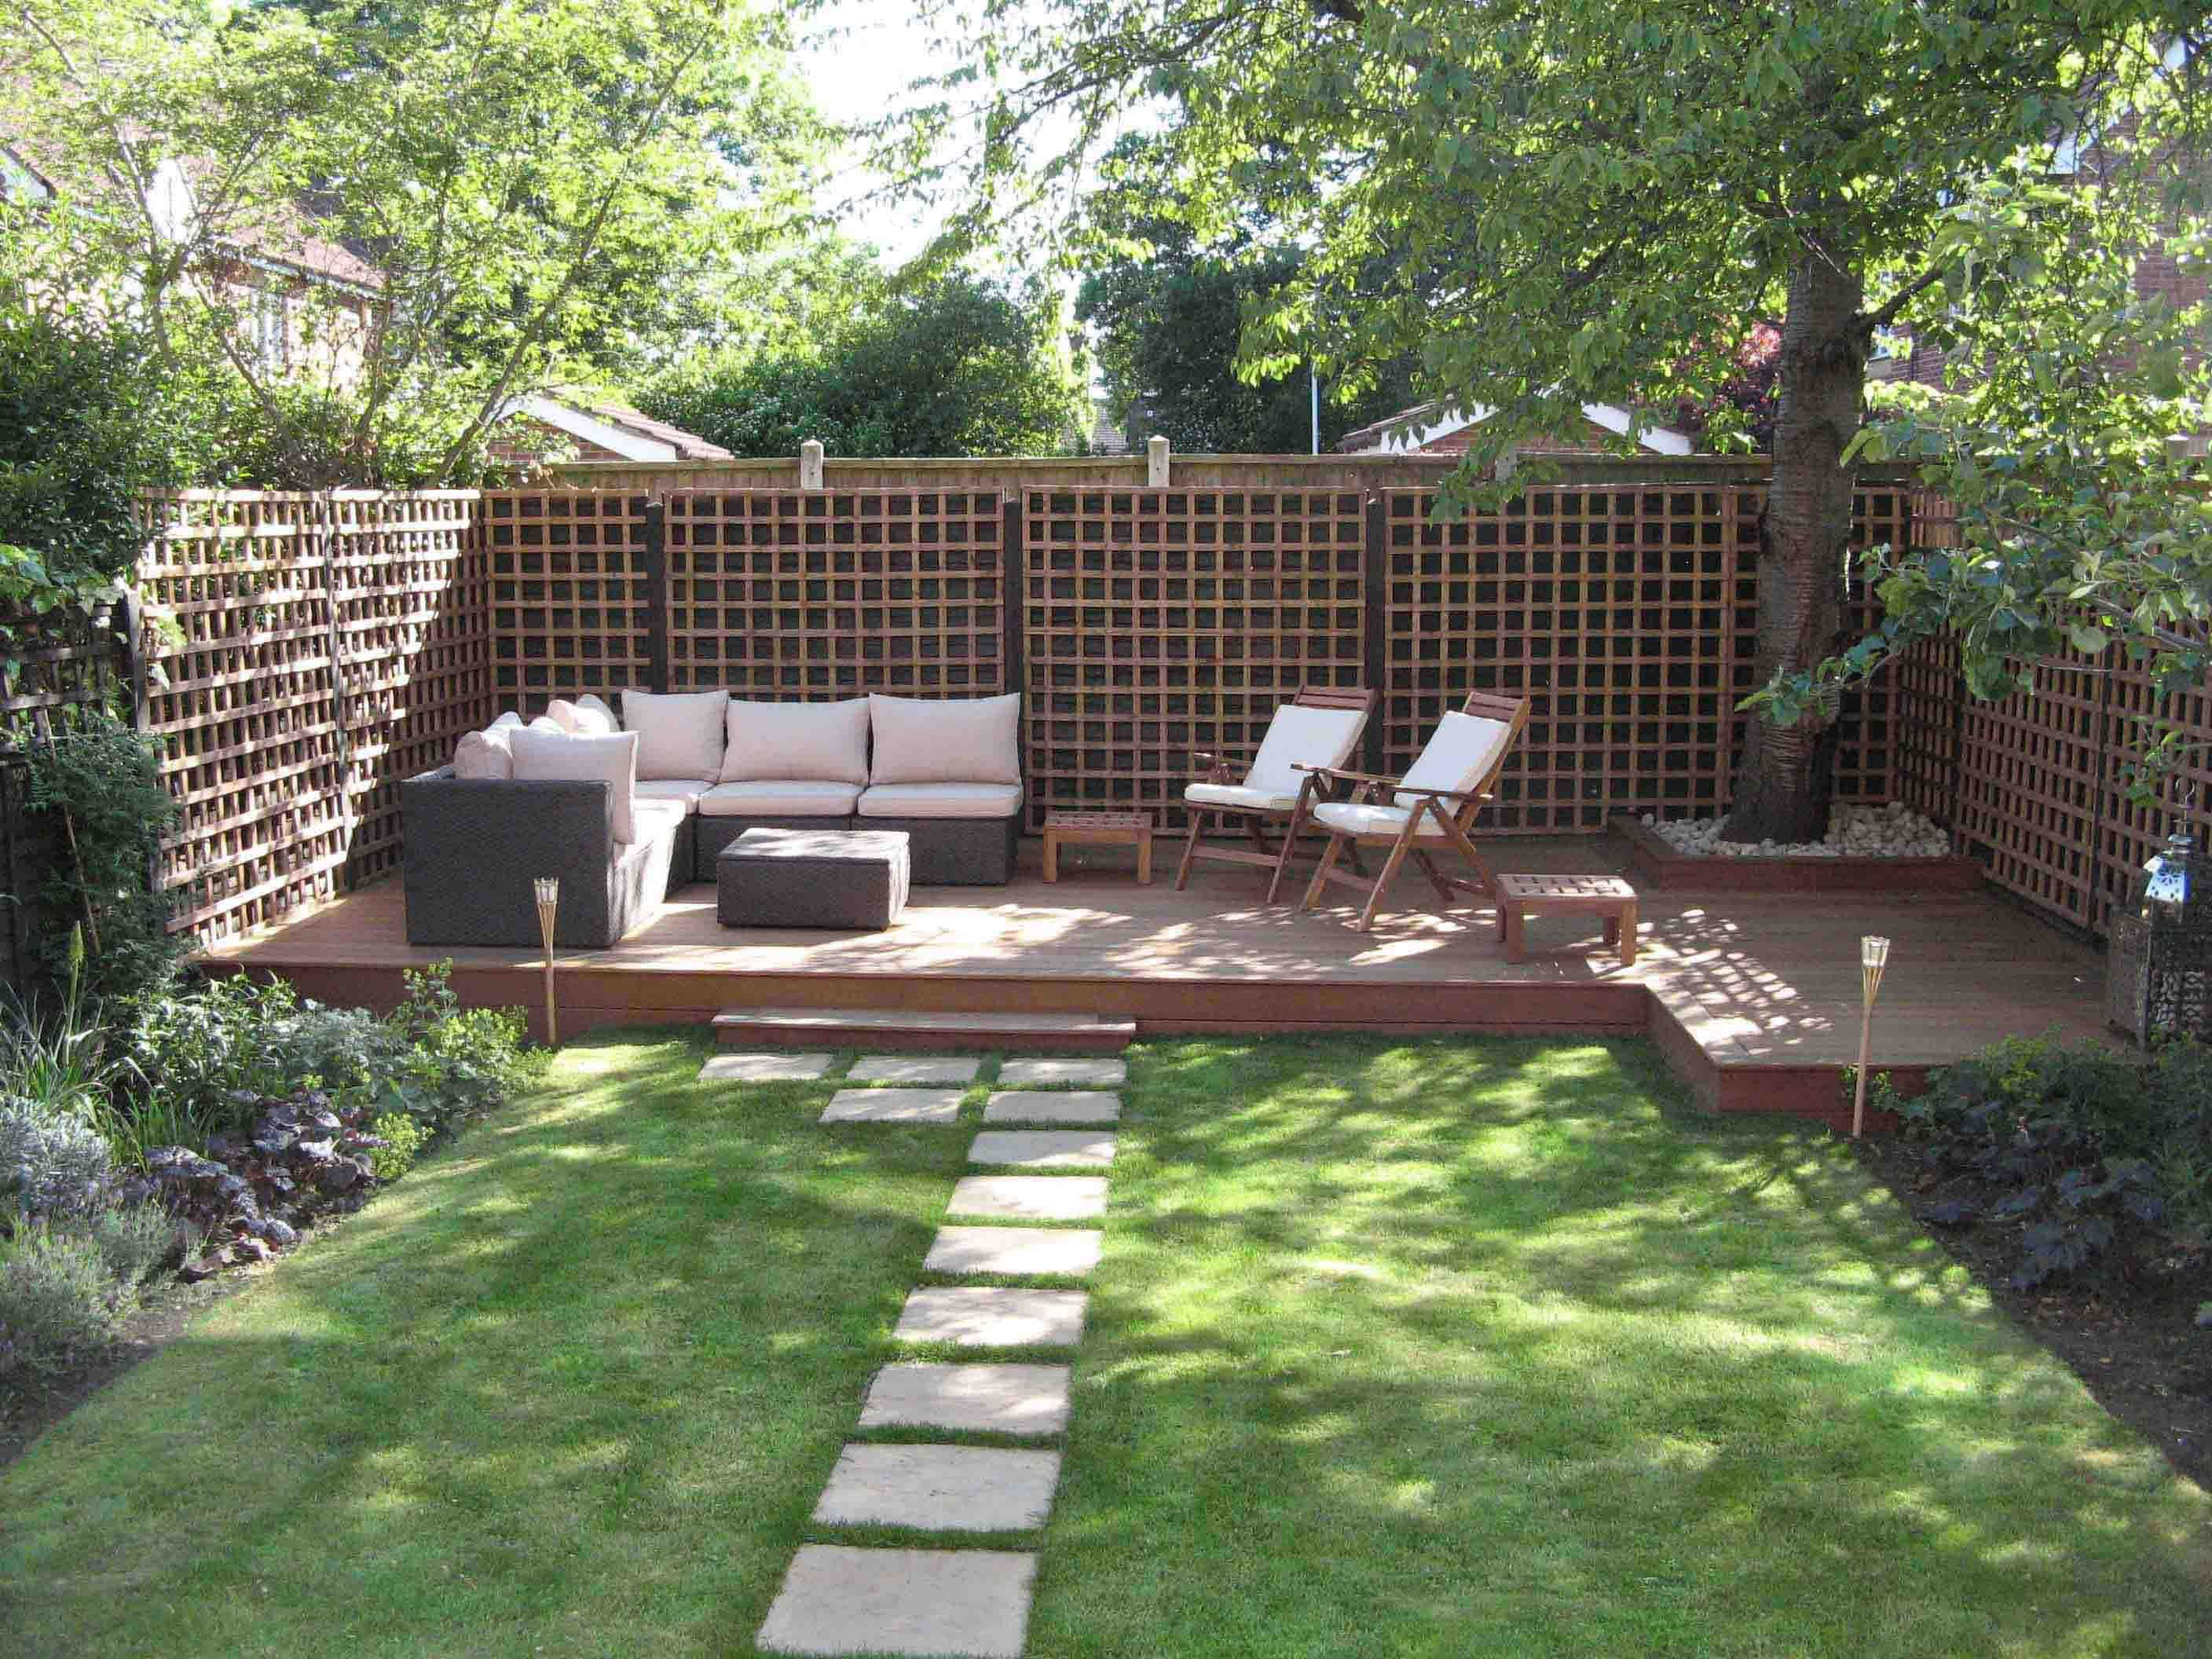 25 Landscape Design For Small Spaces Low deck Yards and Decking